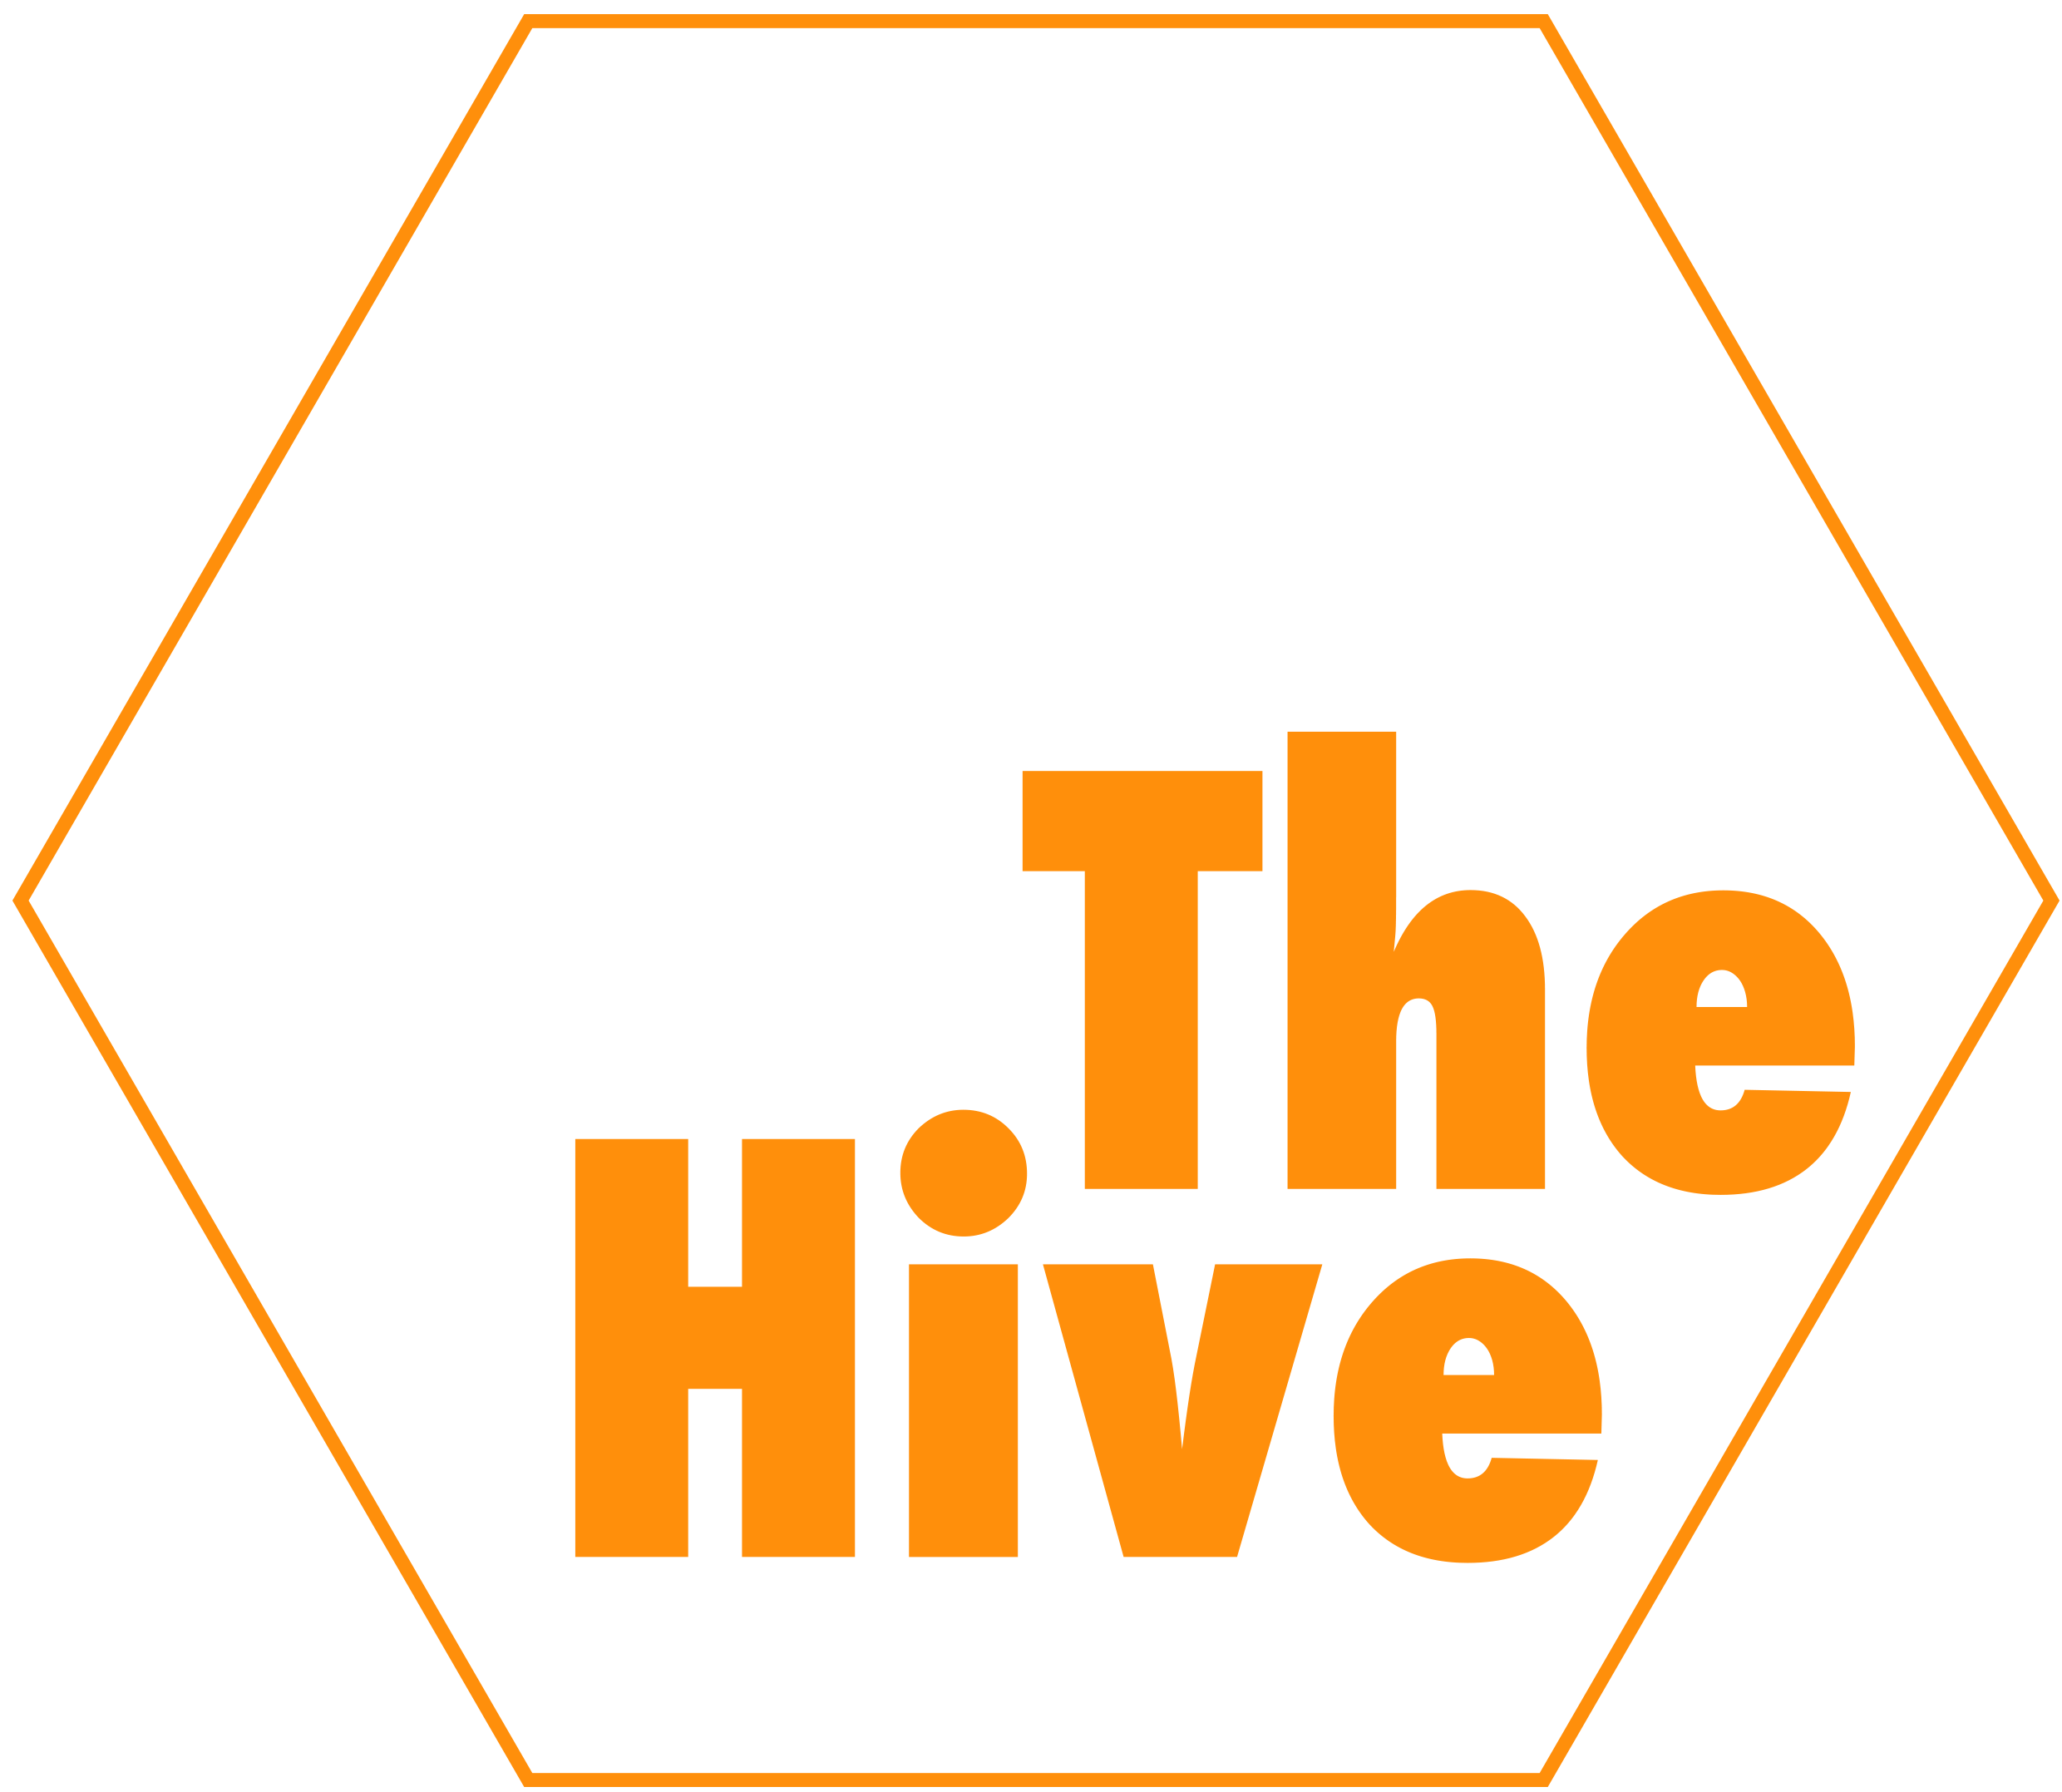 THEHIVE-logo-web-orange.png